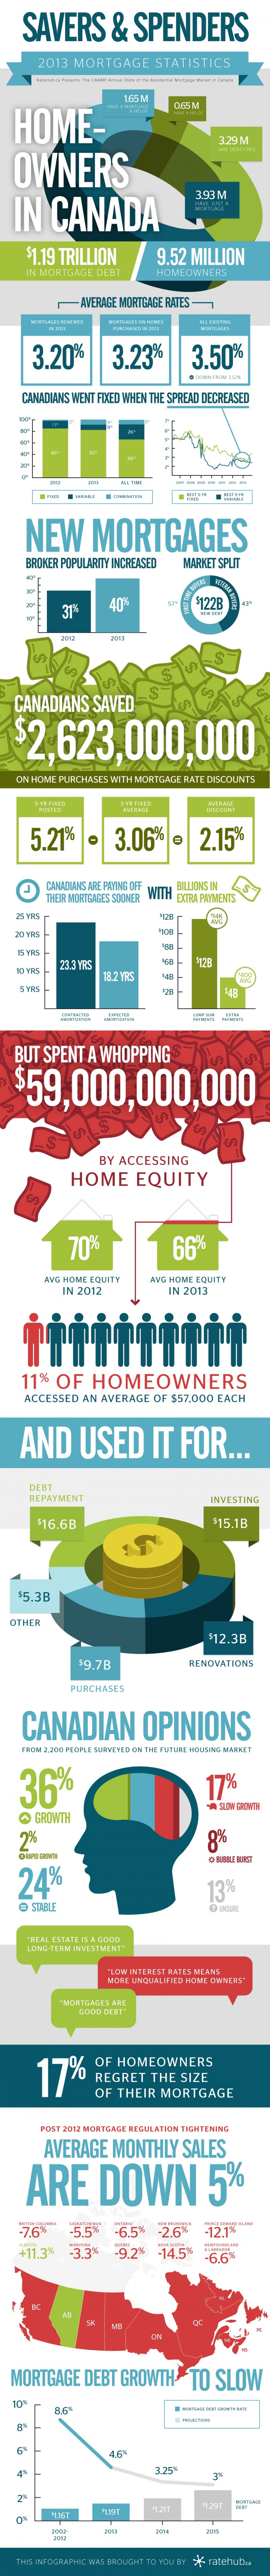 Savers and Spenders: 2013 Mortgage Statistics Infographic